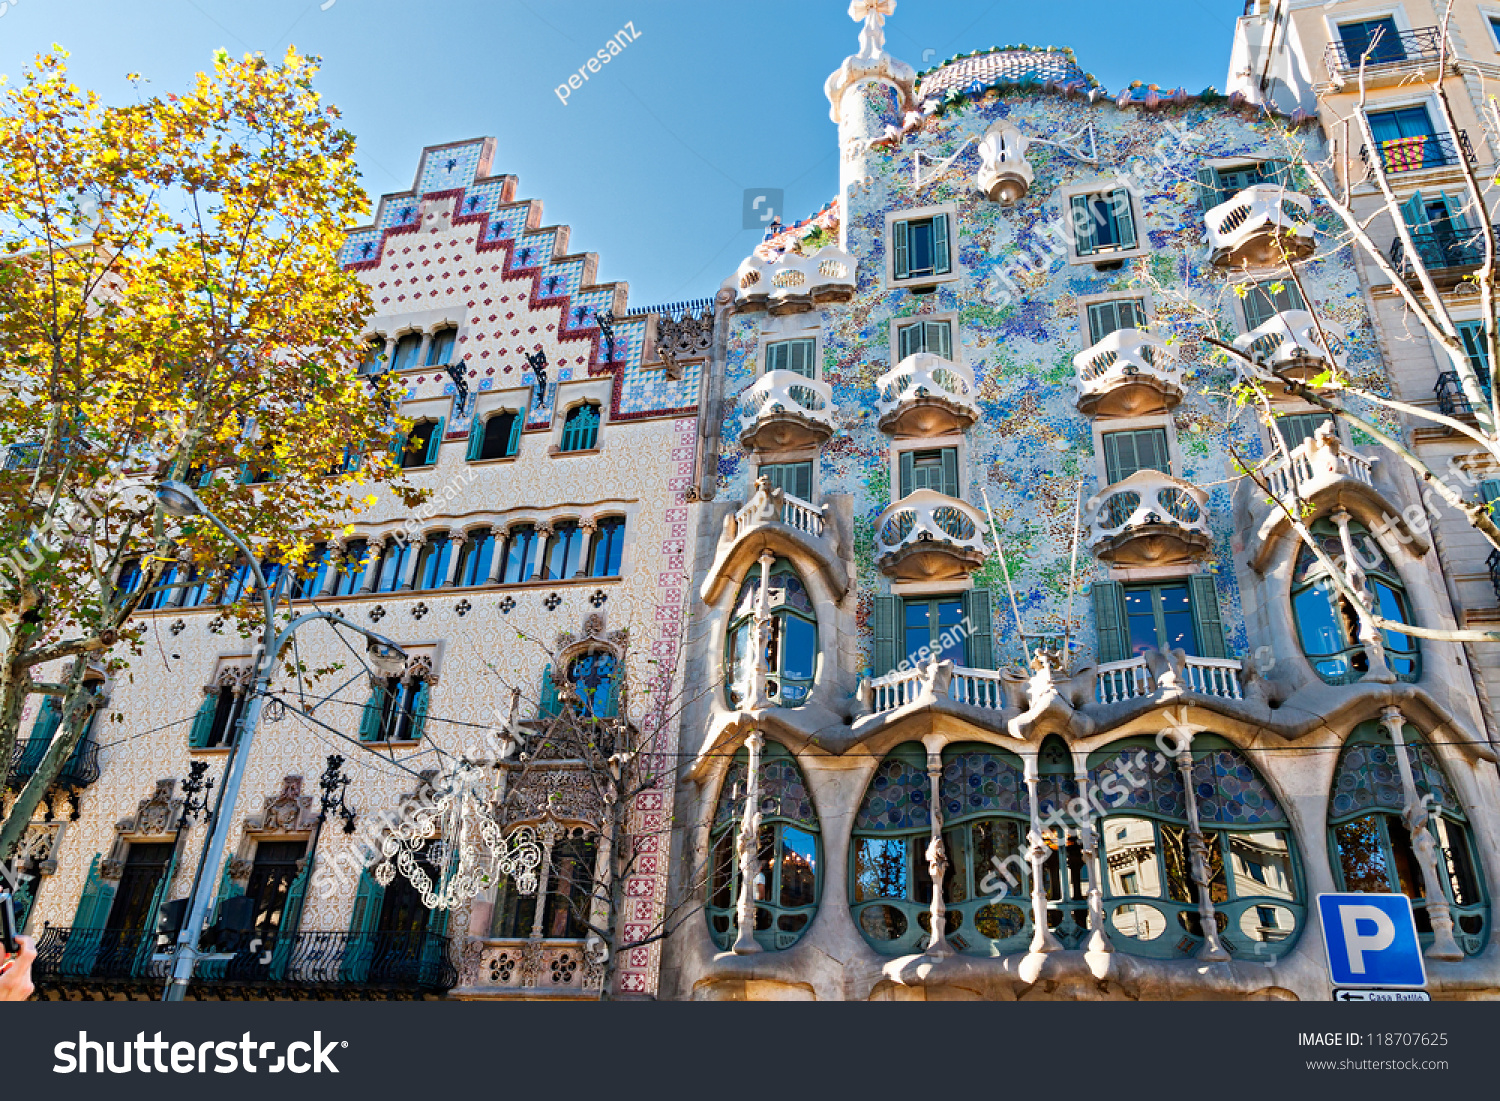 Barcelona spain november 11 casa batllo stock photo 118707625 shutterstock - Casa ametller productes ...